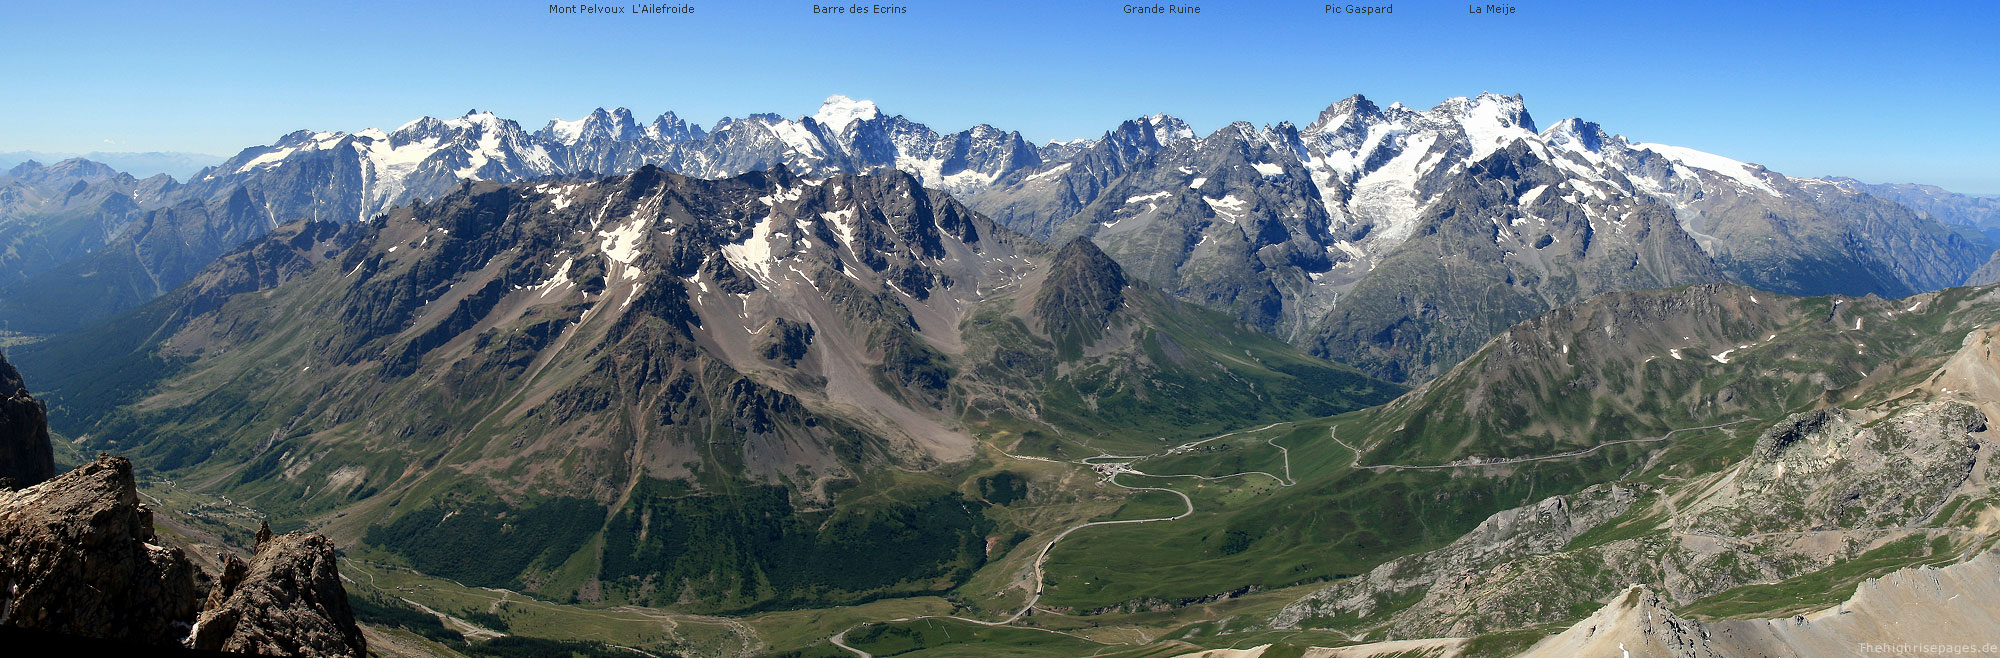 Grand Galibier nach SSO